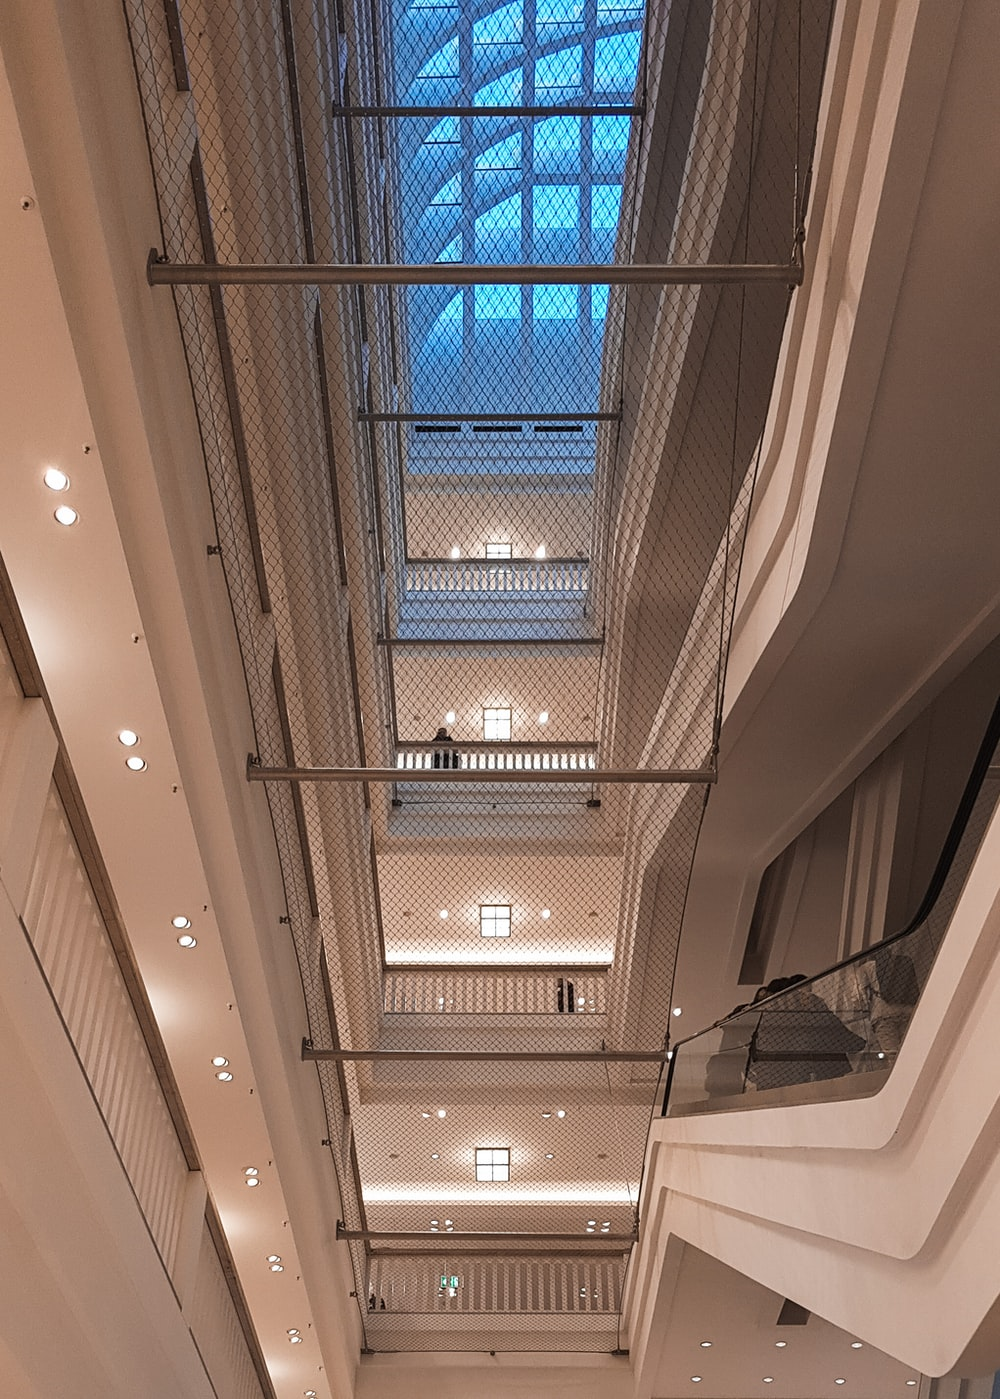 white ceiling with blue glass windows